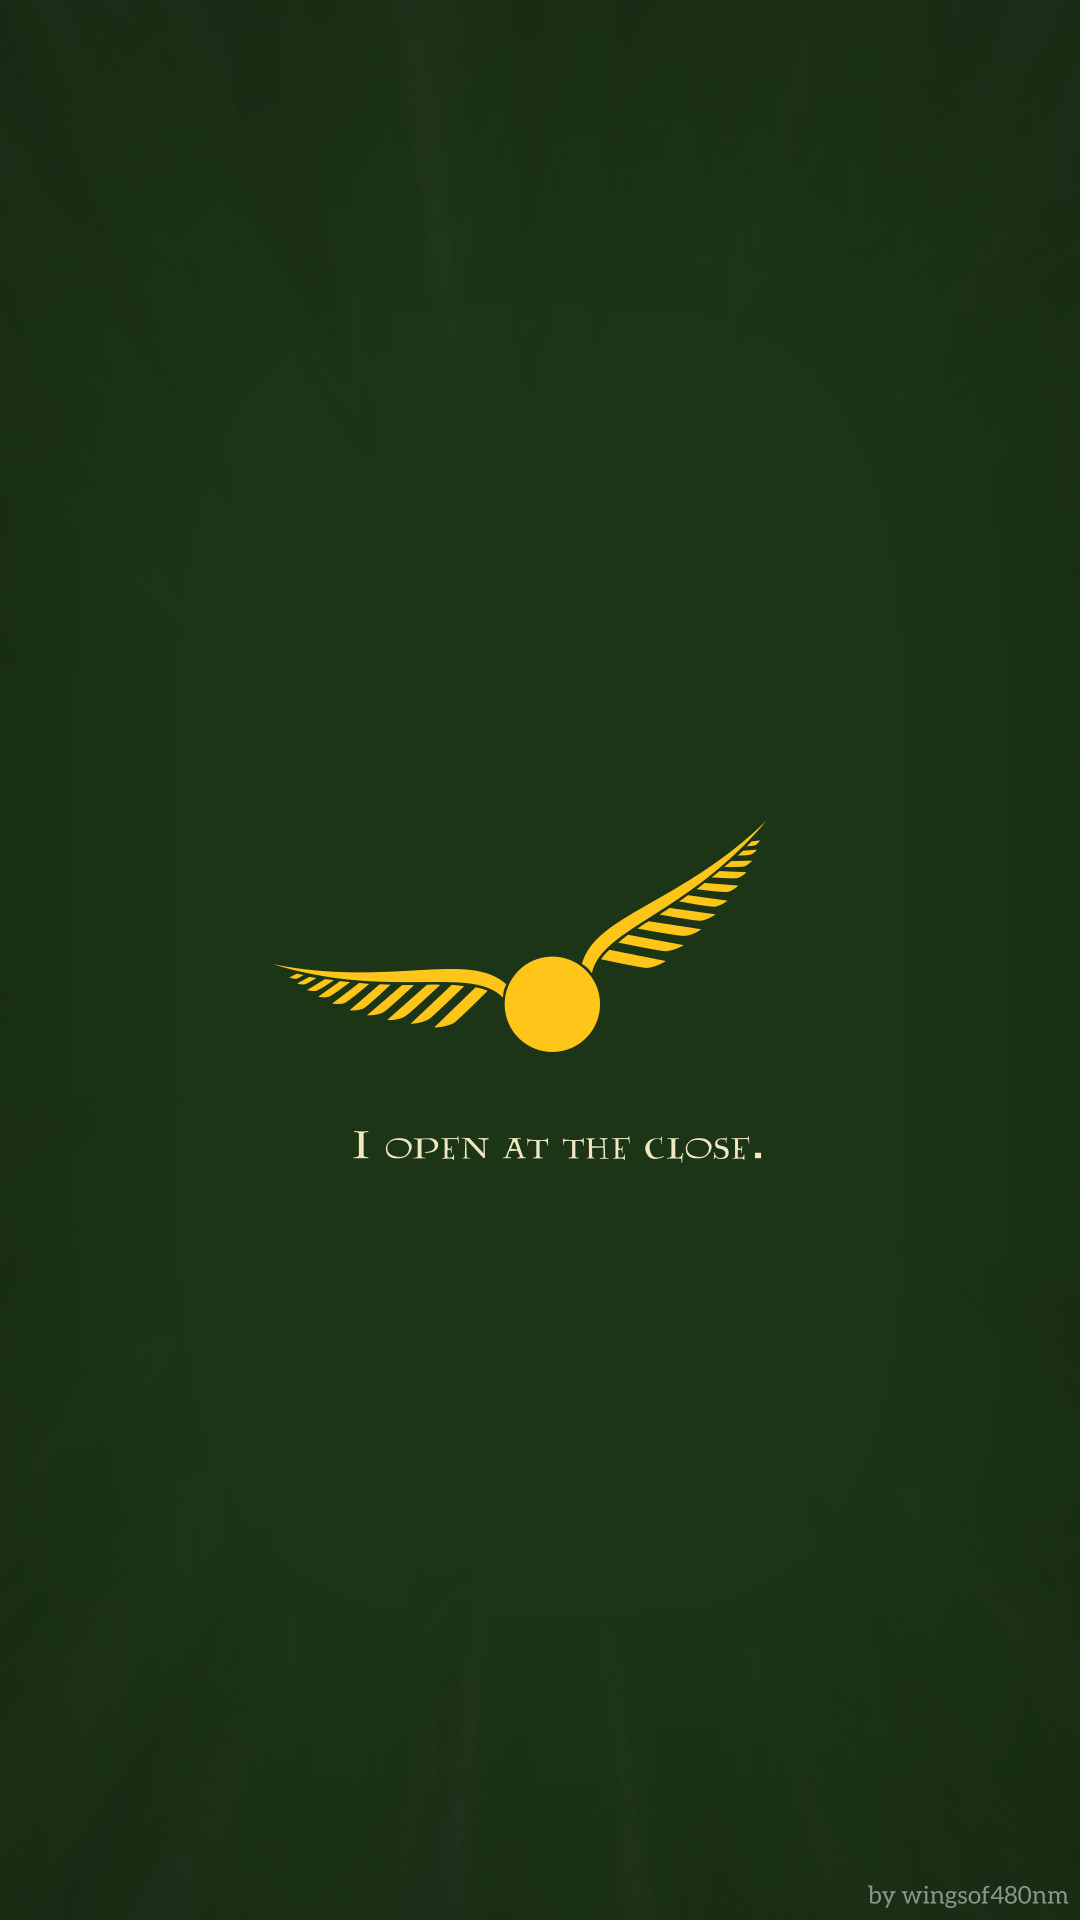 Res: 1080x1920, Harry Potter Minimalist Backgrounds by wingsof480nm on DeviantArt